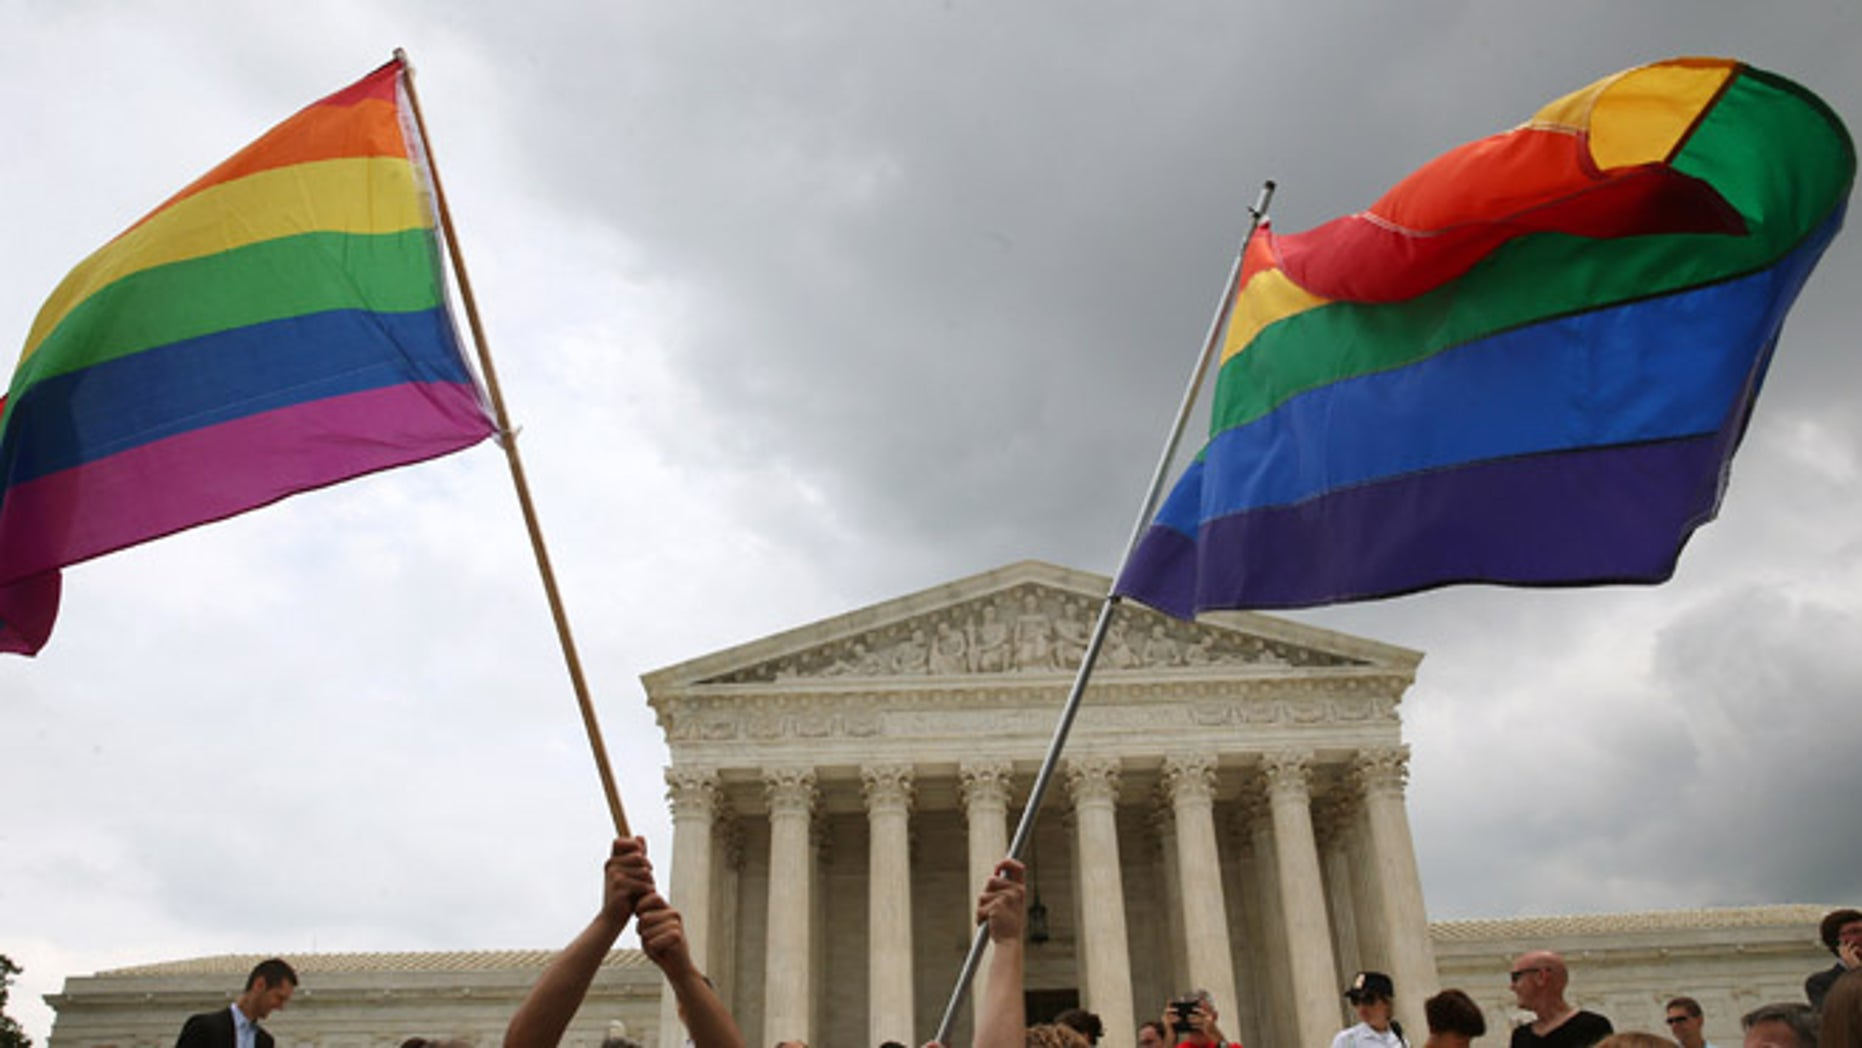 WASHINGTON, DC - JUNE 26: People celebrate in front of the U.S. Supreme Court after the ruling in favor of same-sex marriage June 26, 2015 in Washington, DC. The high court ruled that same-sex couples have the right to marry in all 50 states.  (Photo by Mark Wilson/Getty Images)